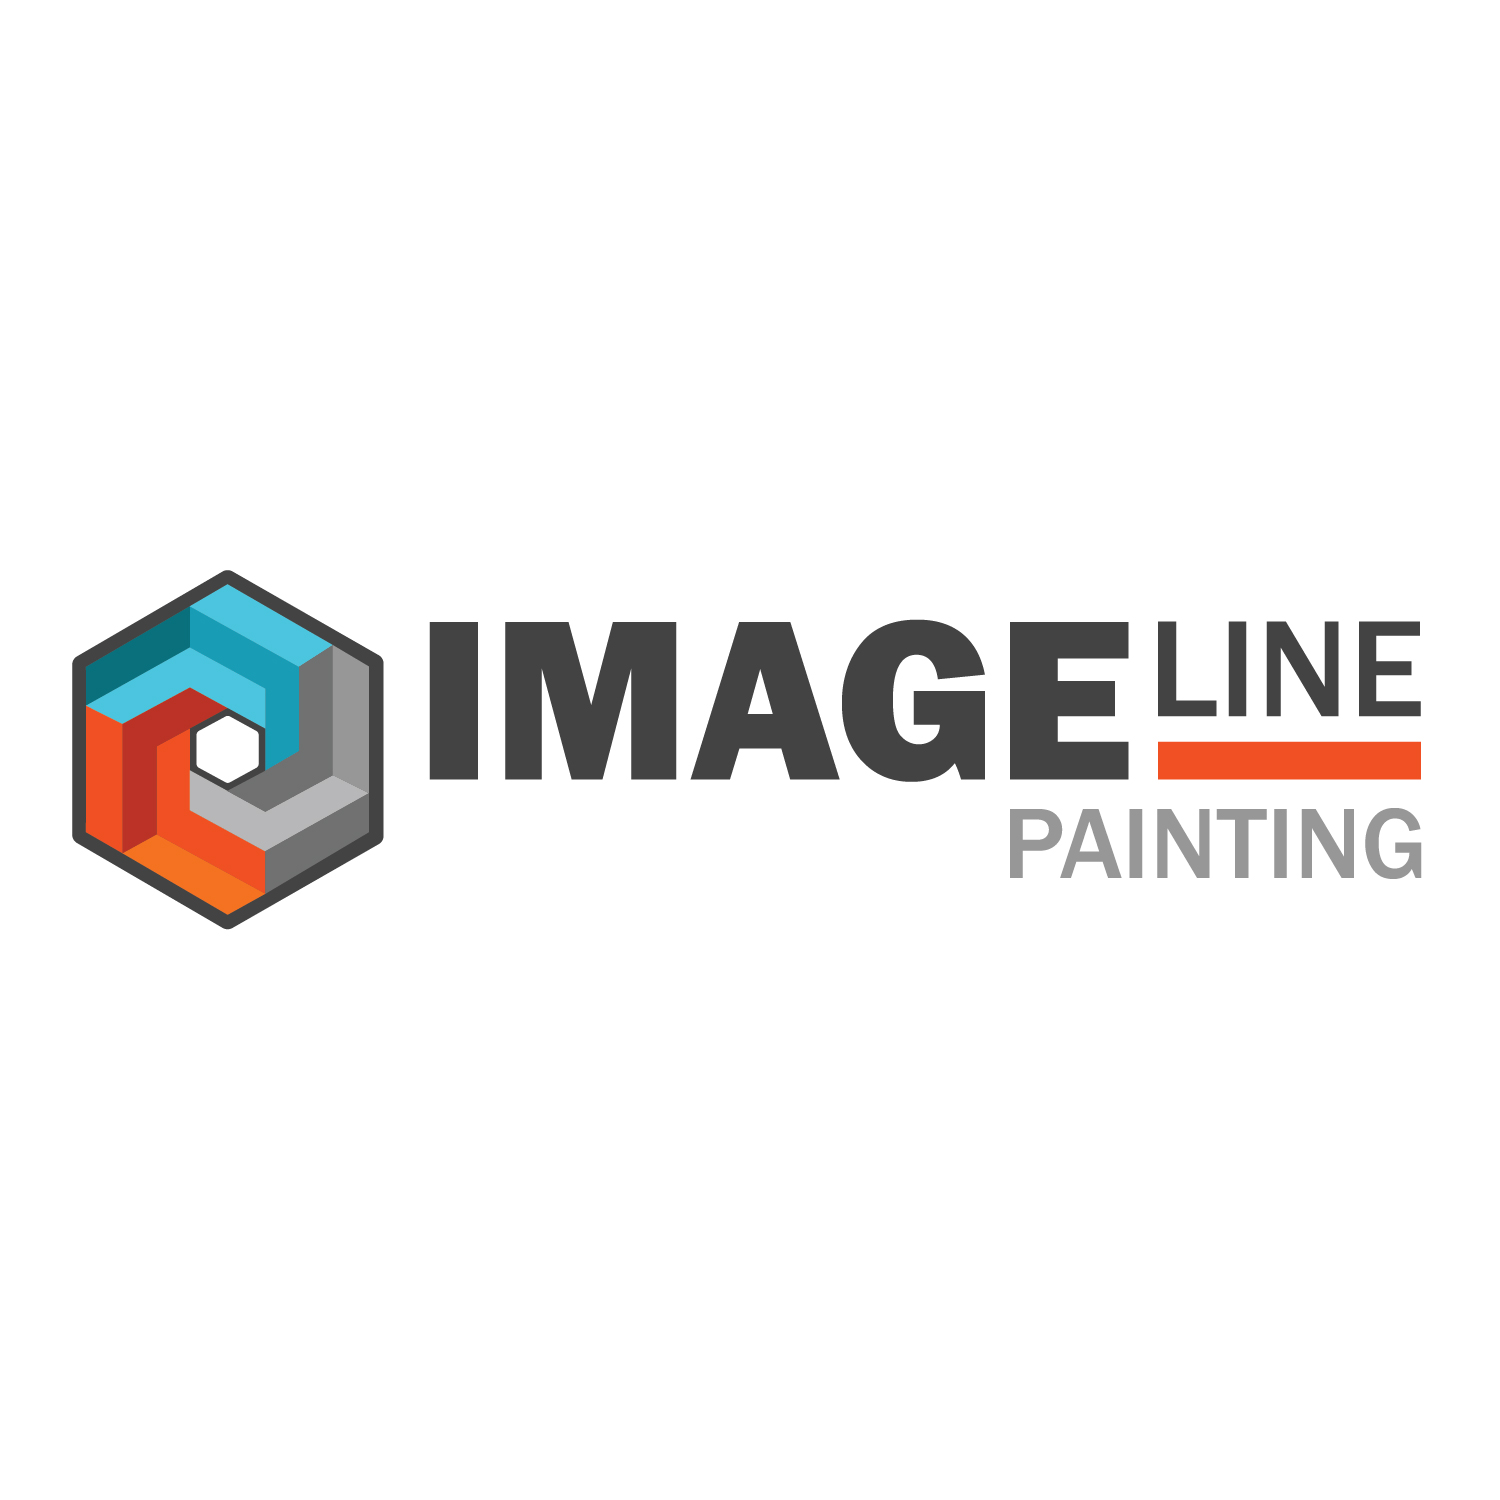 Image Line Painting